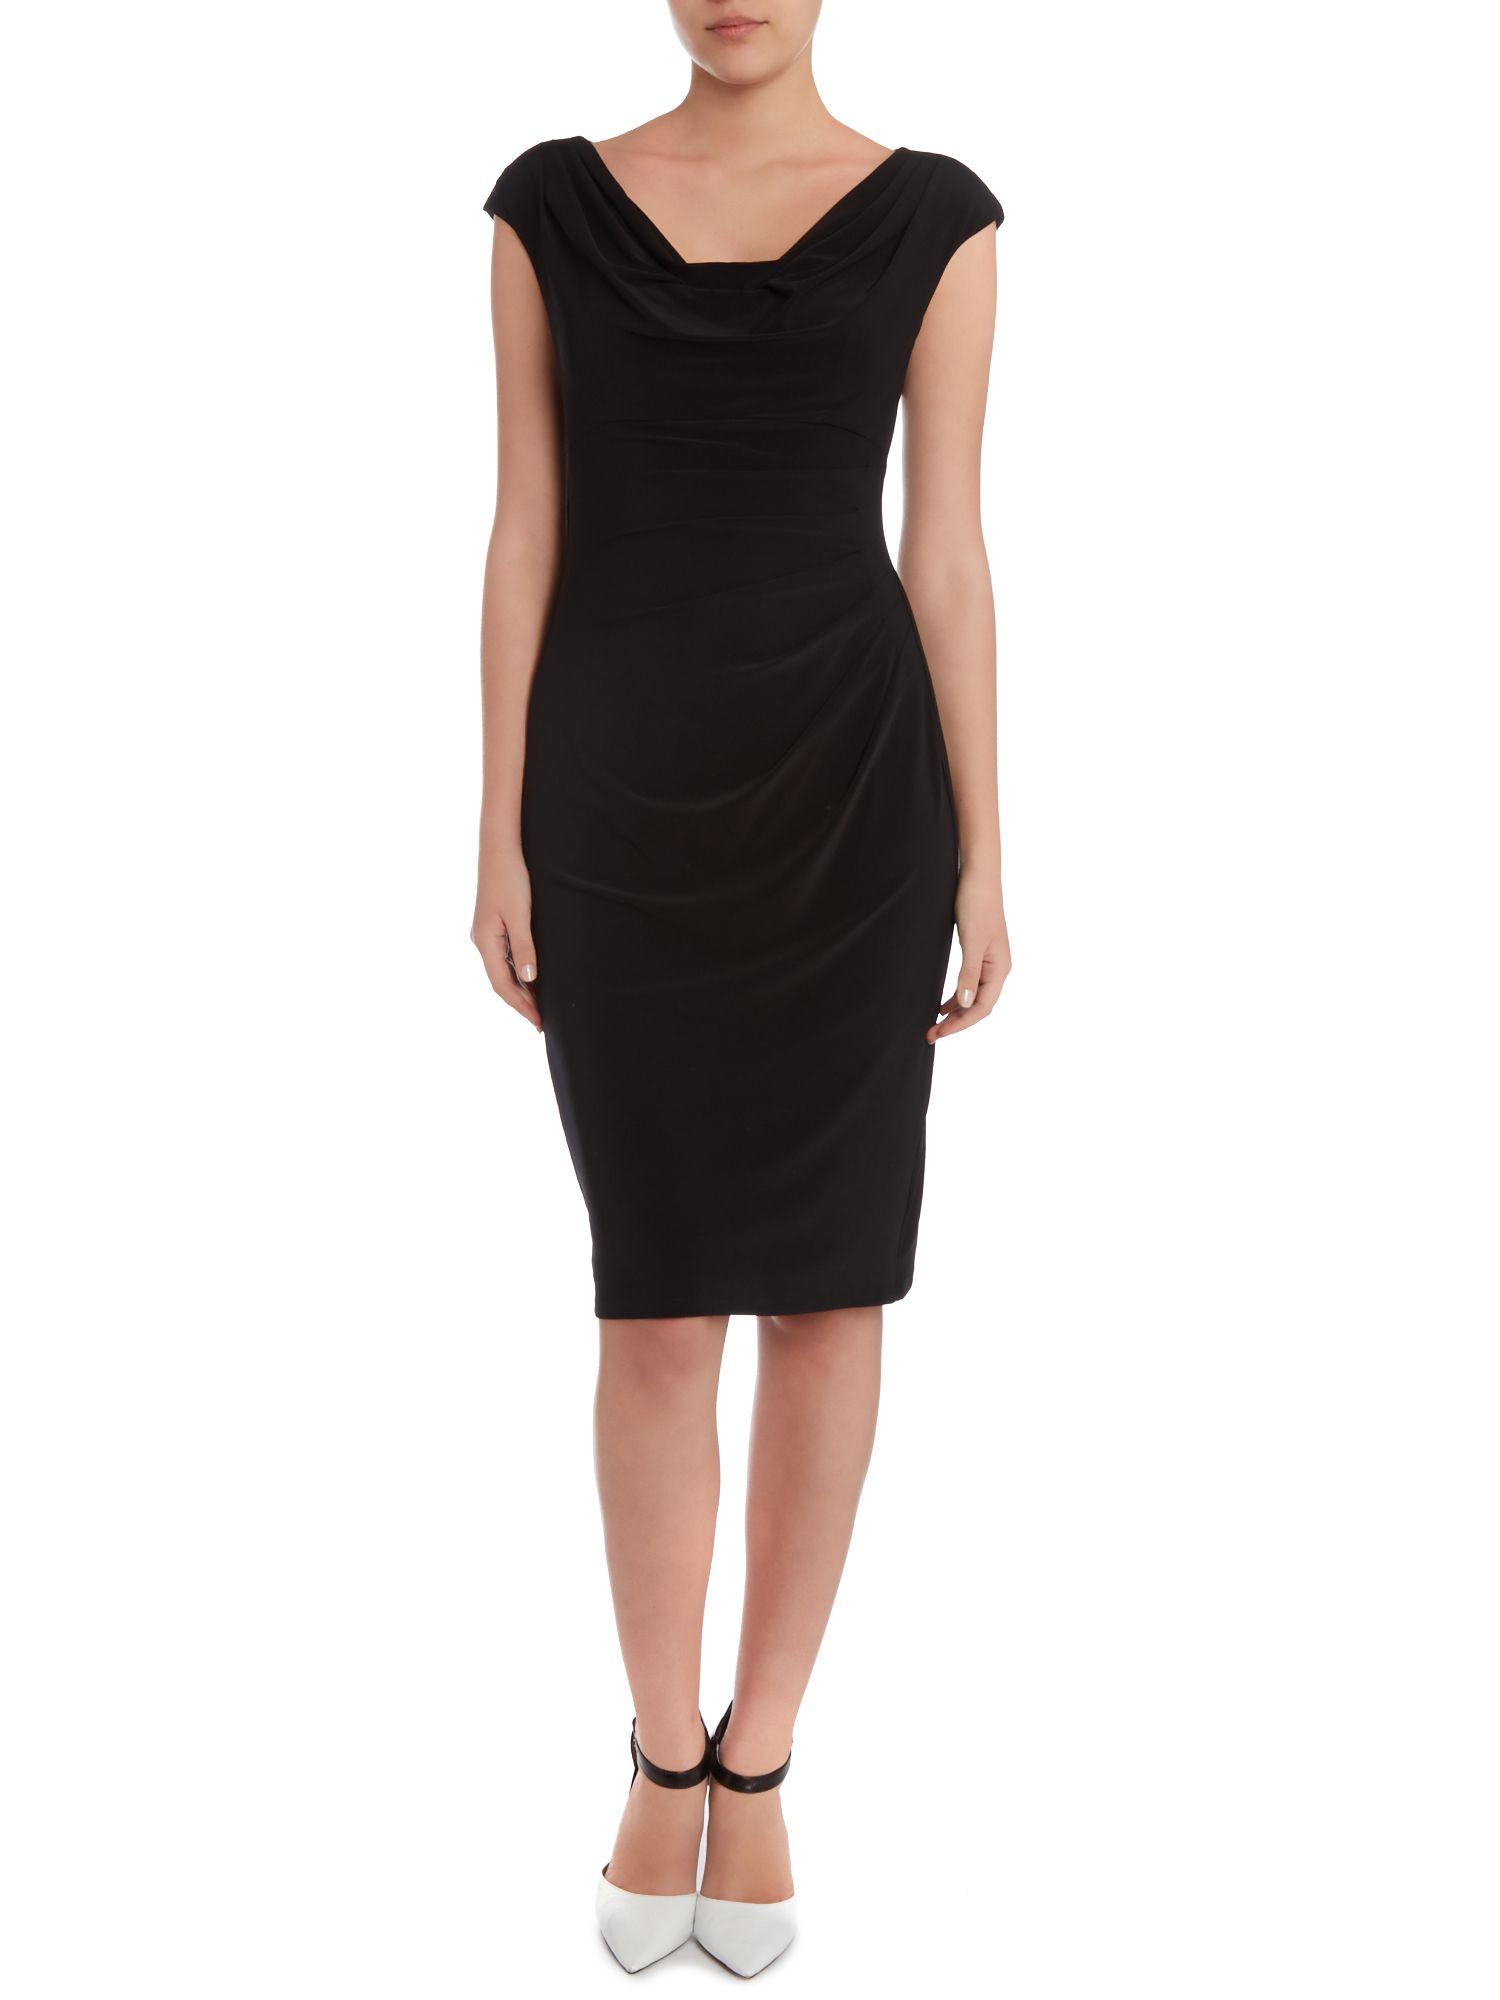 Cowl neck dress with cap sleeve